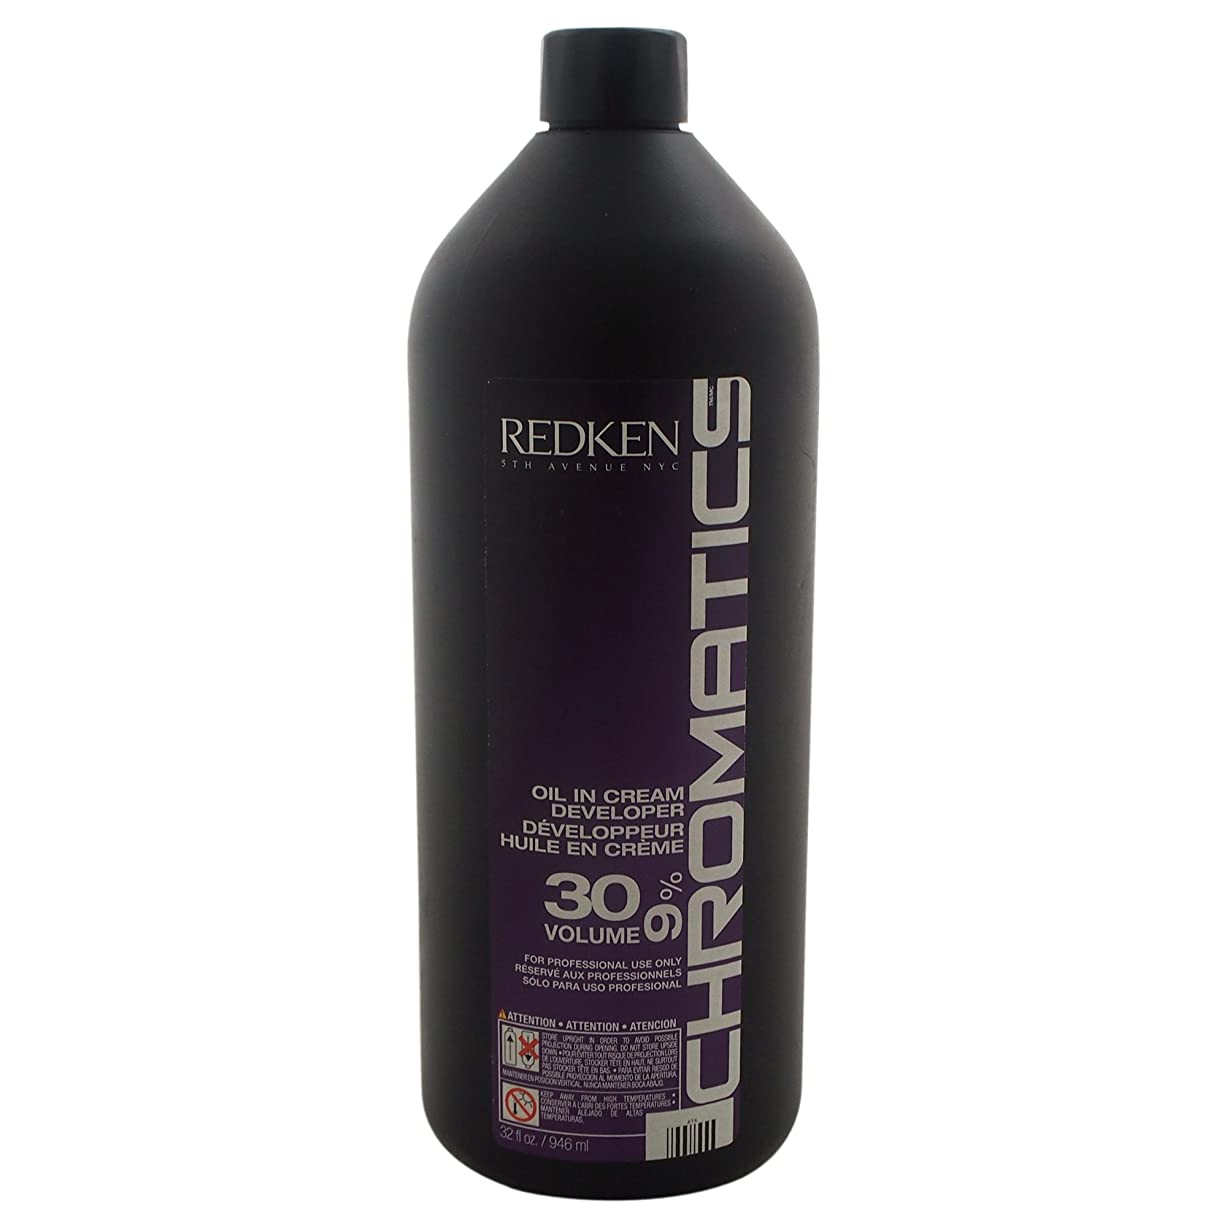 配送雪の急流Redken Chromatics Oil In Cream Developer 30 Volume 9 Percent Cream, 32 Ounce by Redken